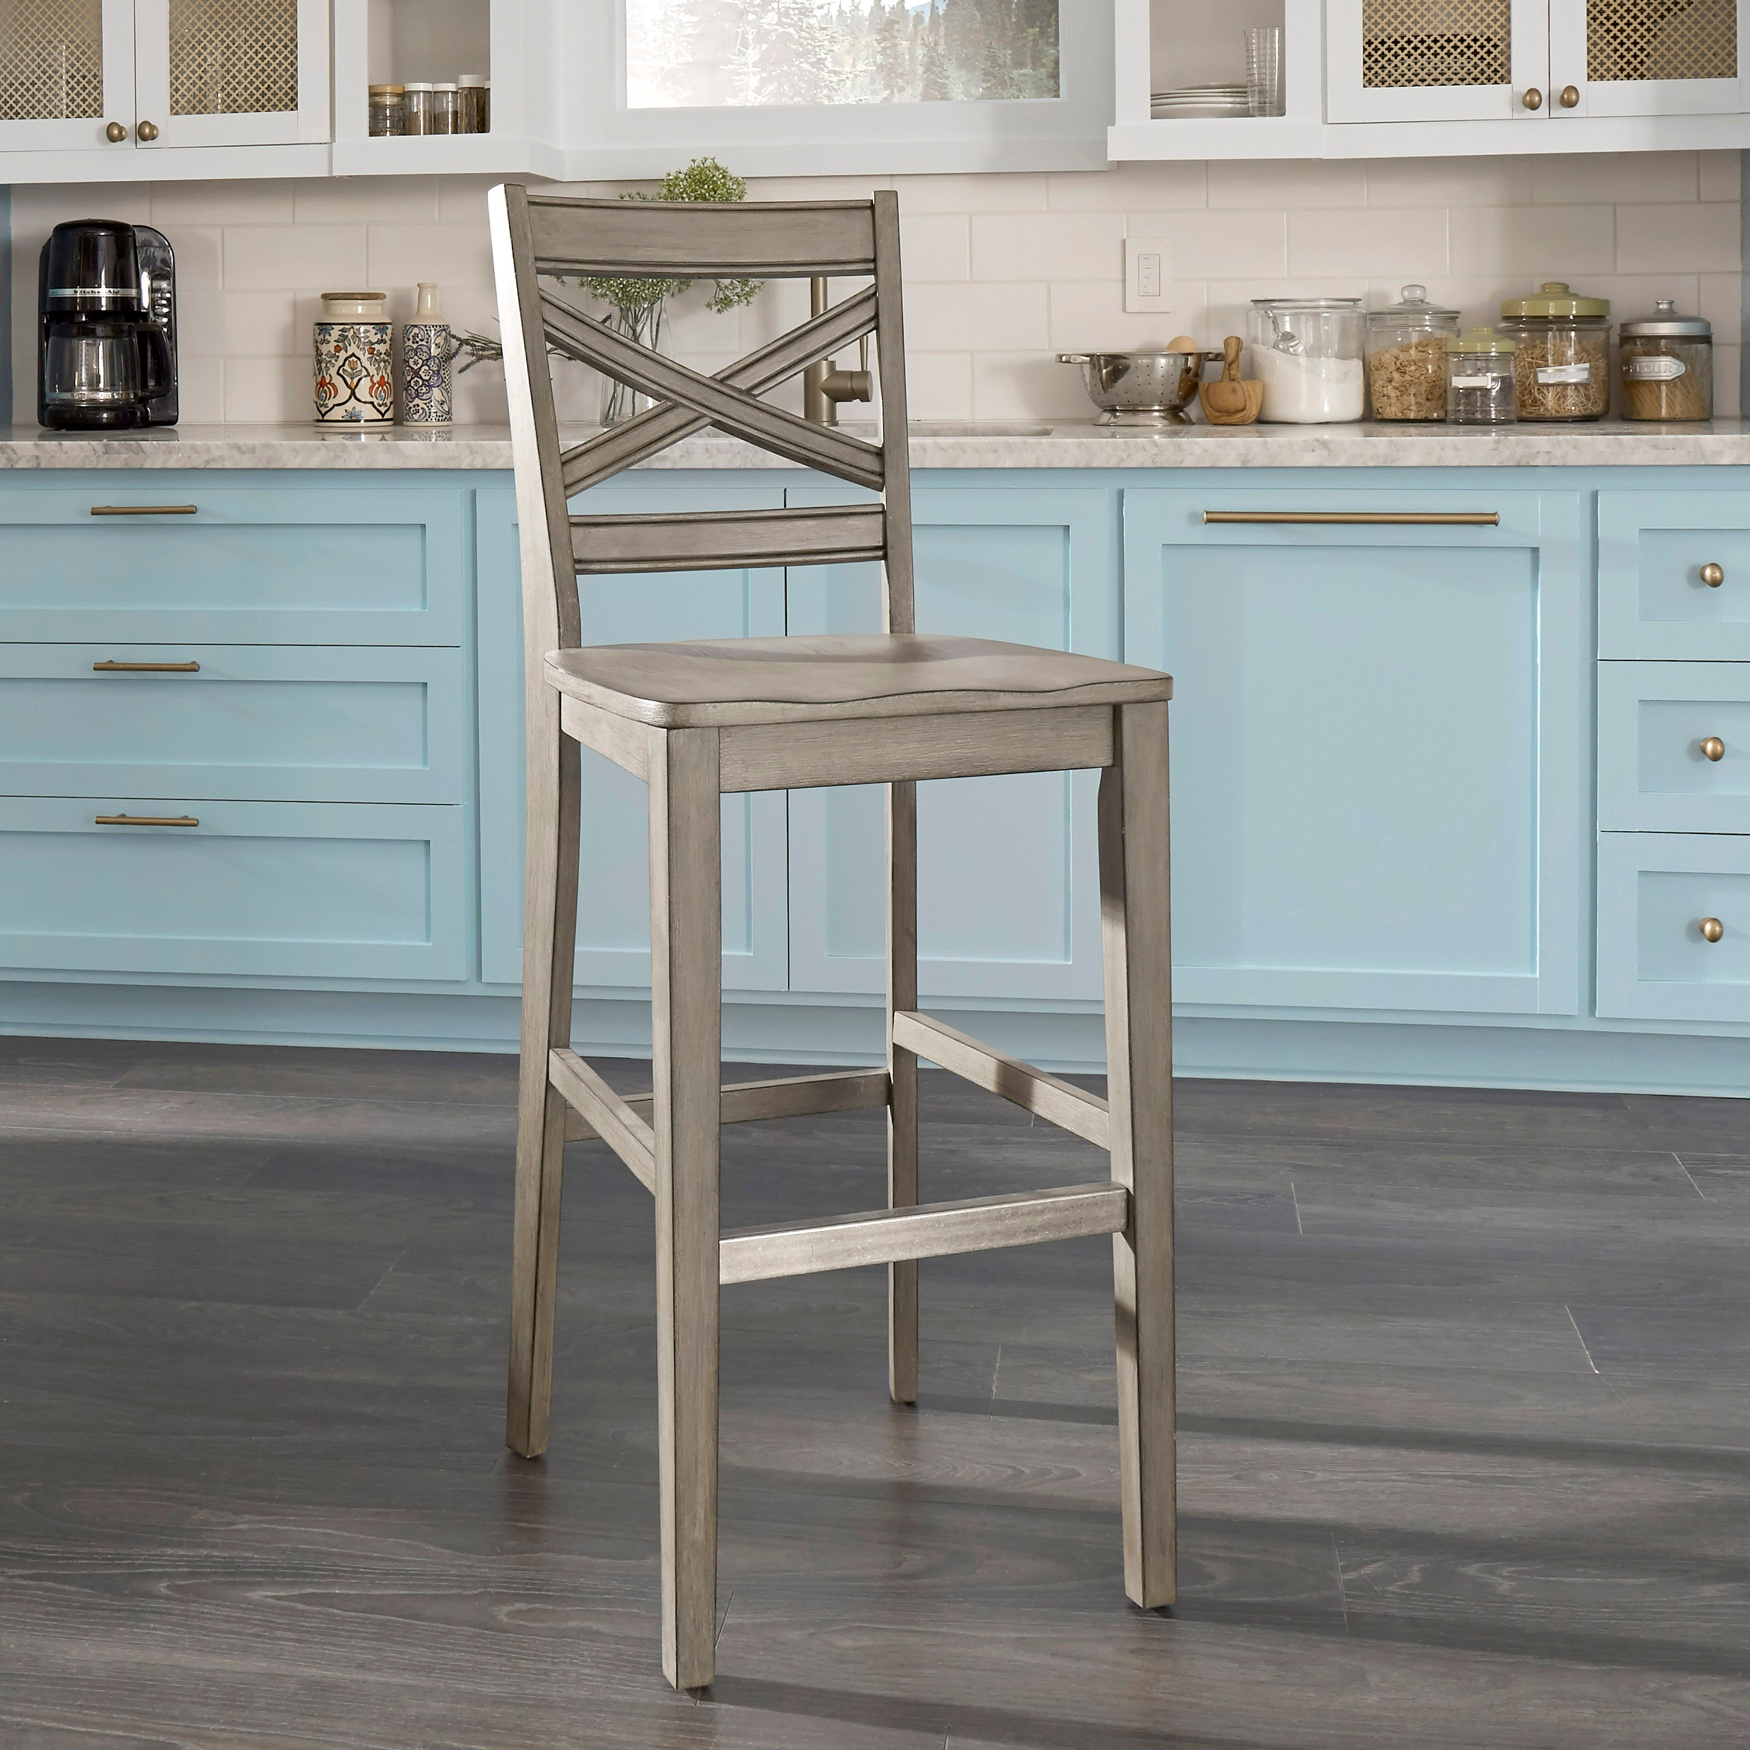 Mountain Lodge Bar Stool by Home Styles, MULTI GRAY